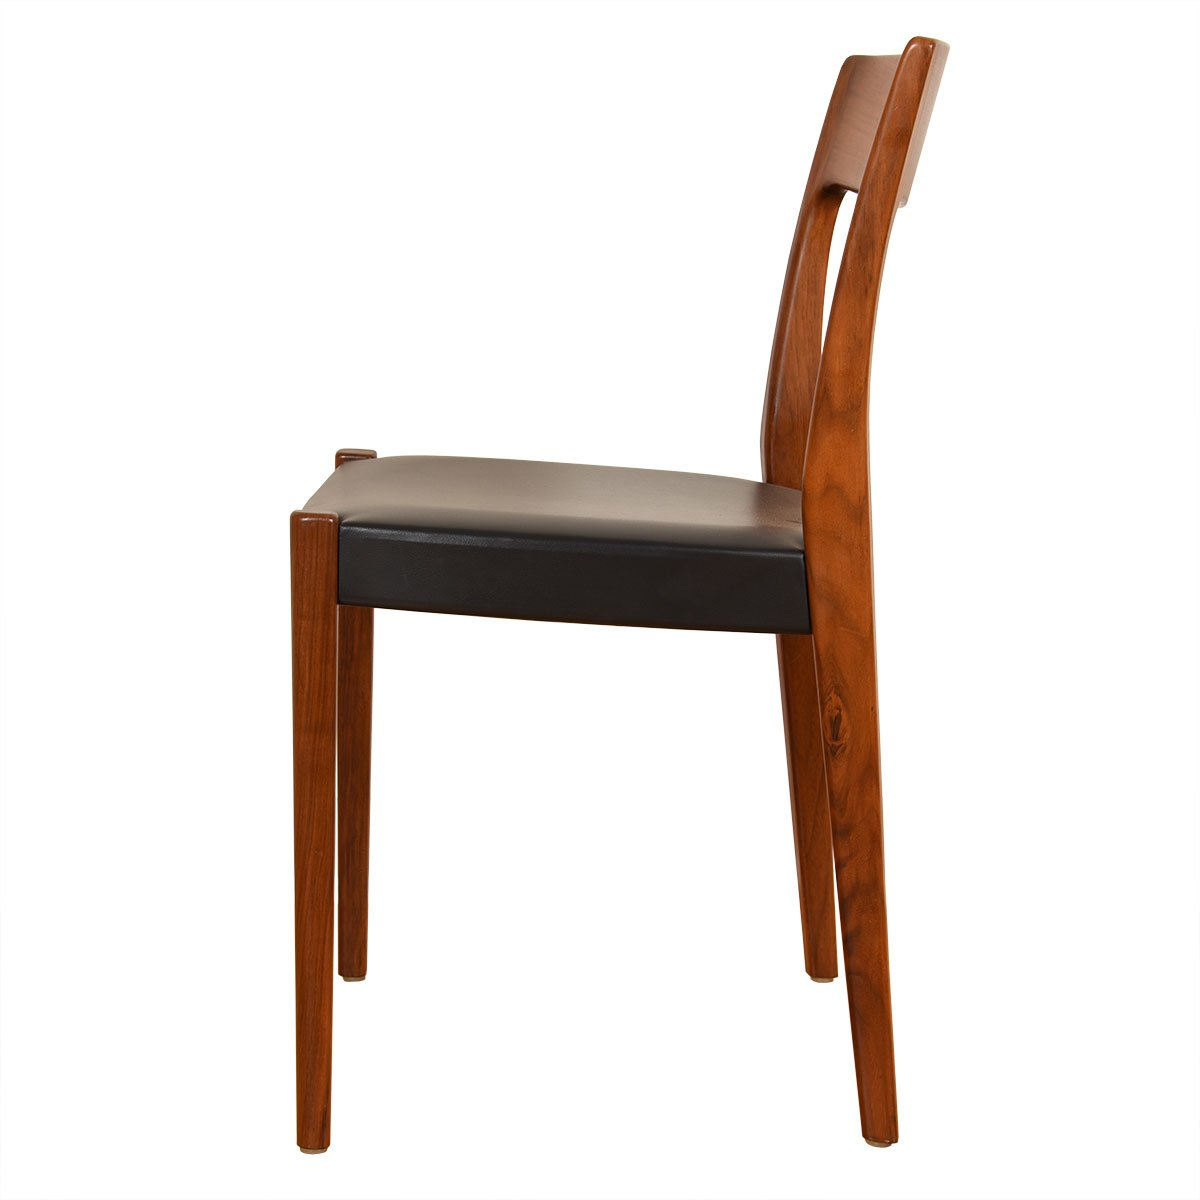 Set of 4 Scandinavian Modern Walnut Dining Chairs